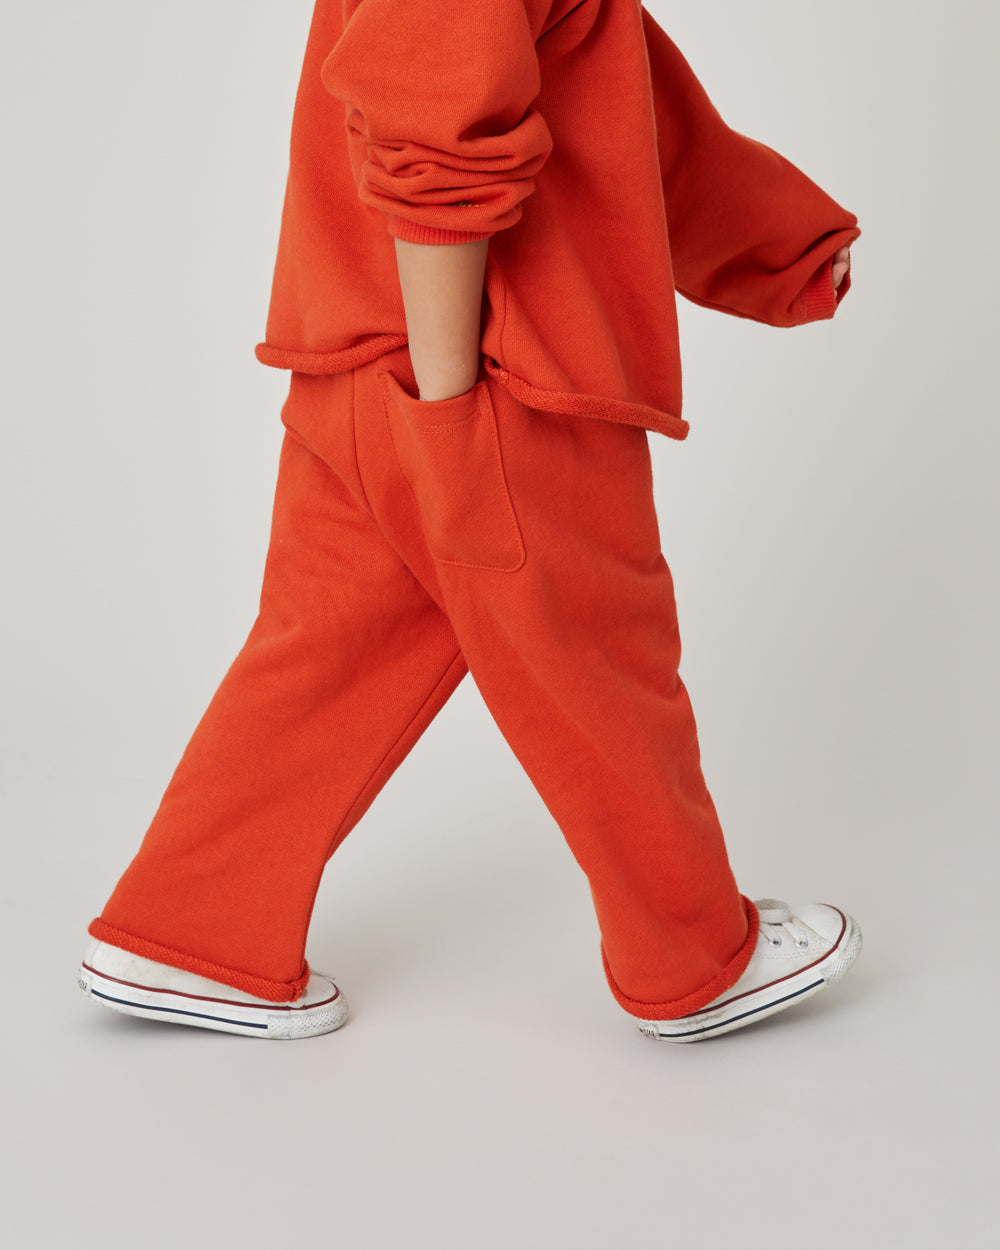 Ollie Sweatpants in Poppy